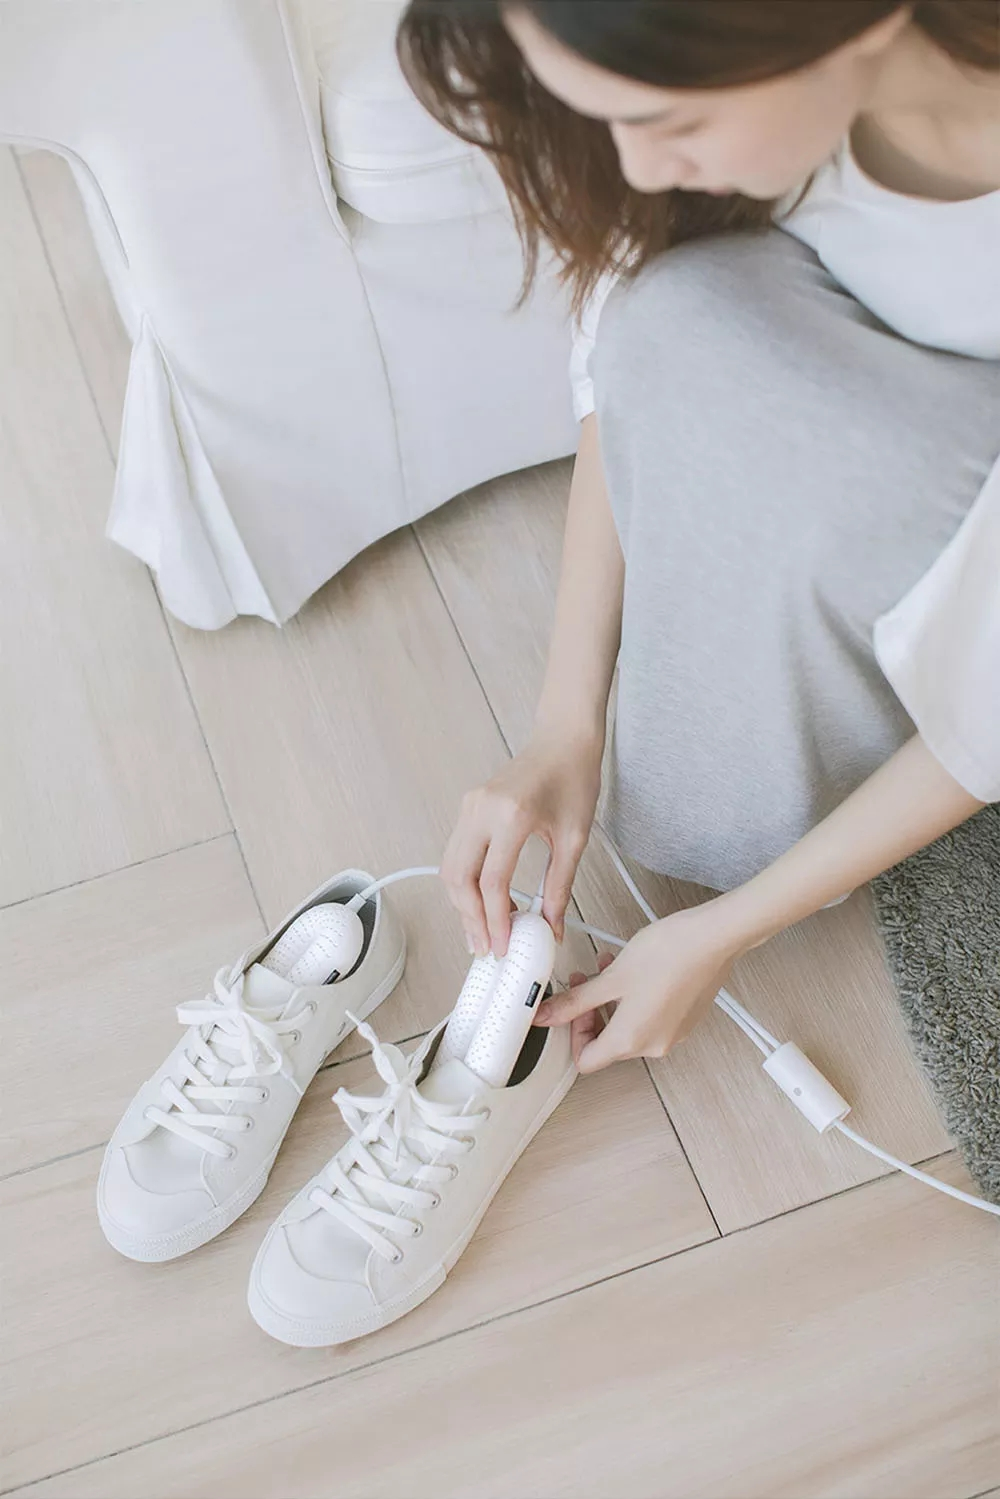 Portable Shoe Dryer For Household Electric Sterilization 6